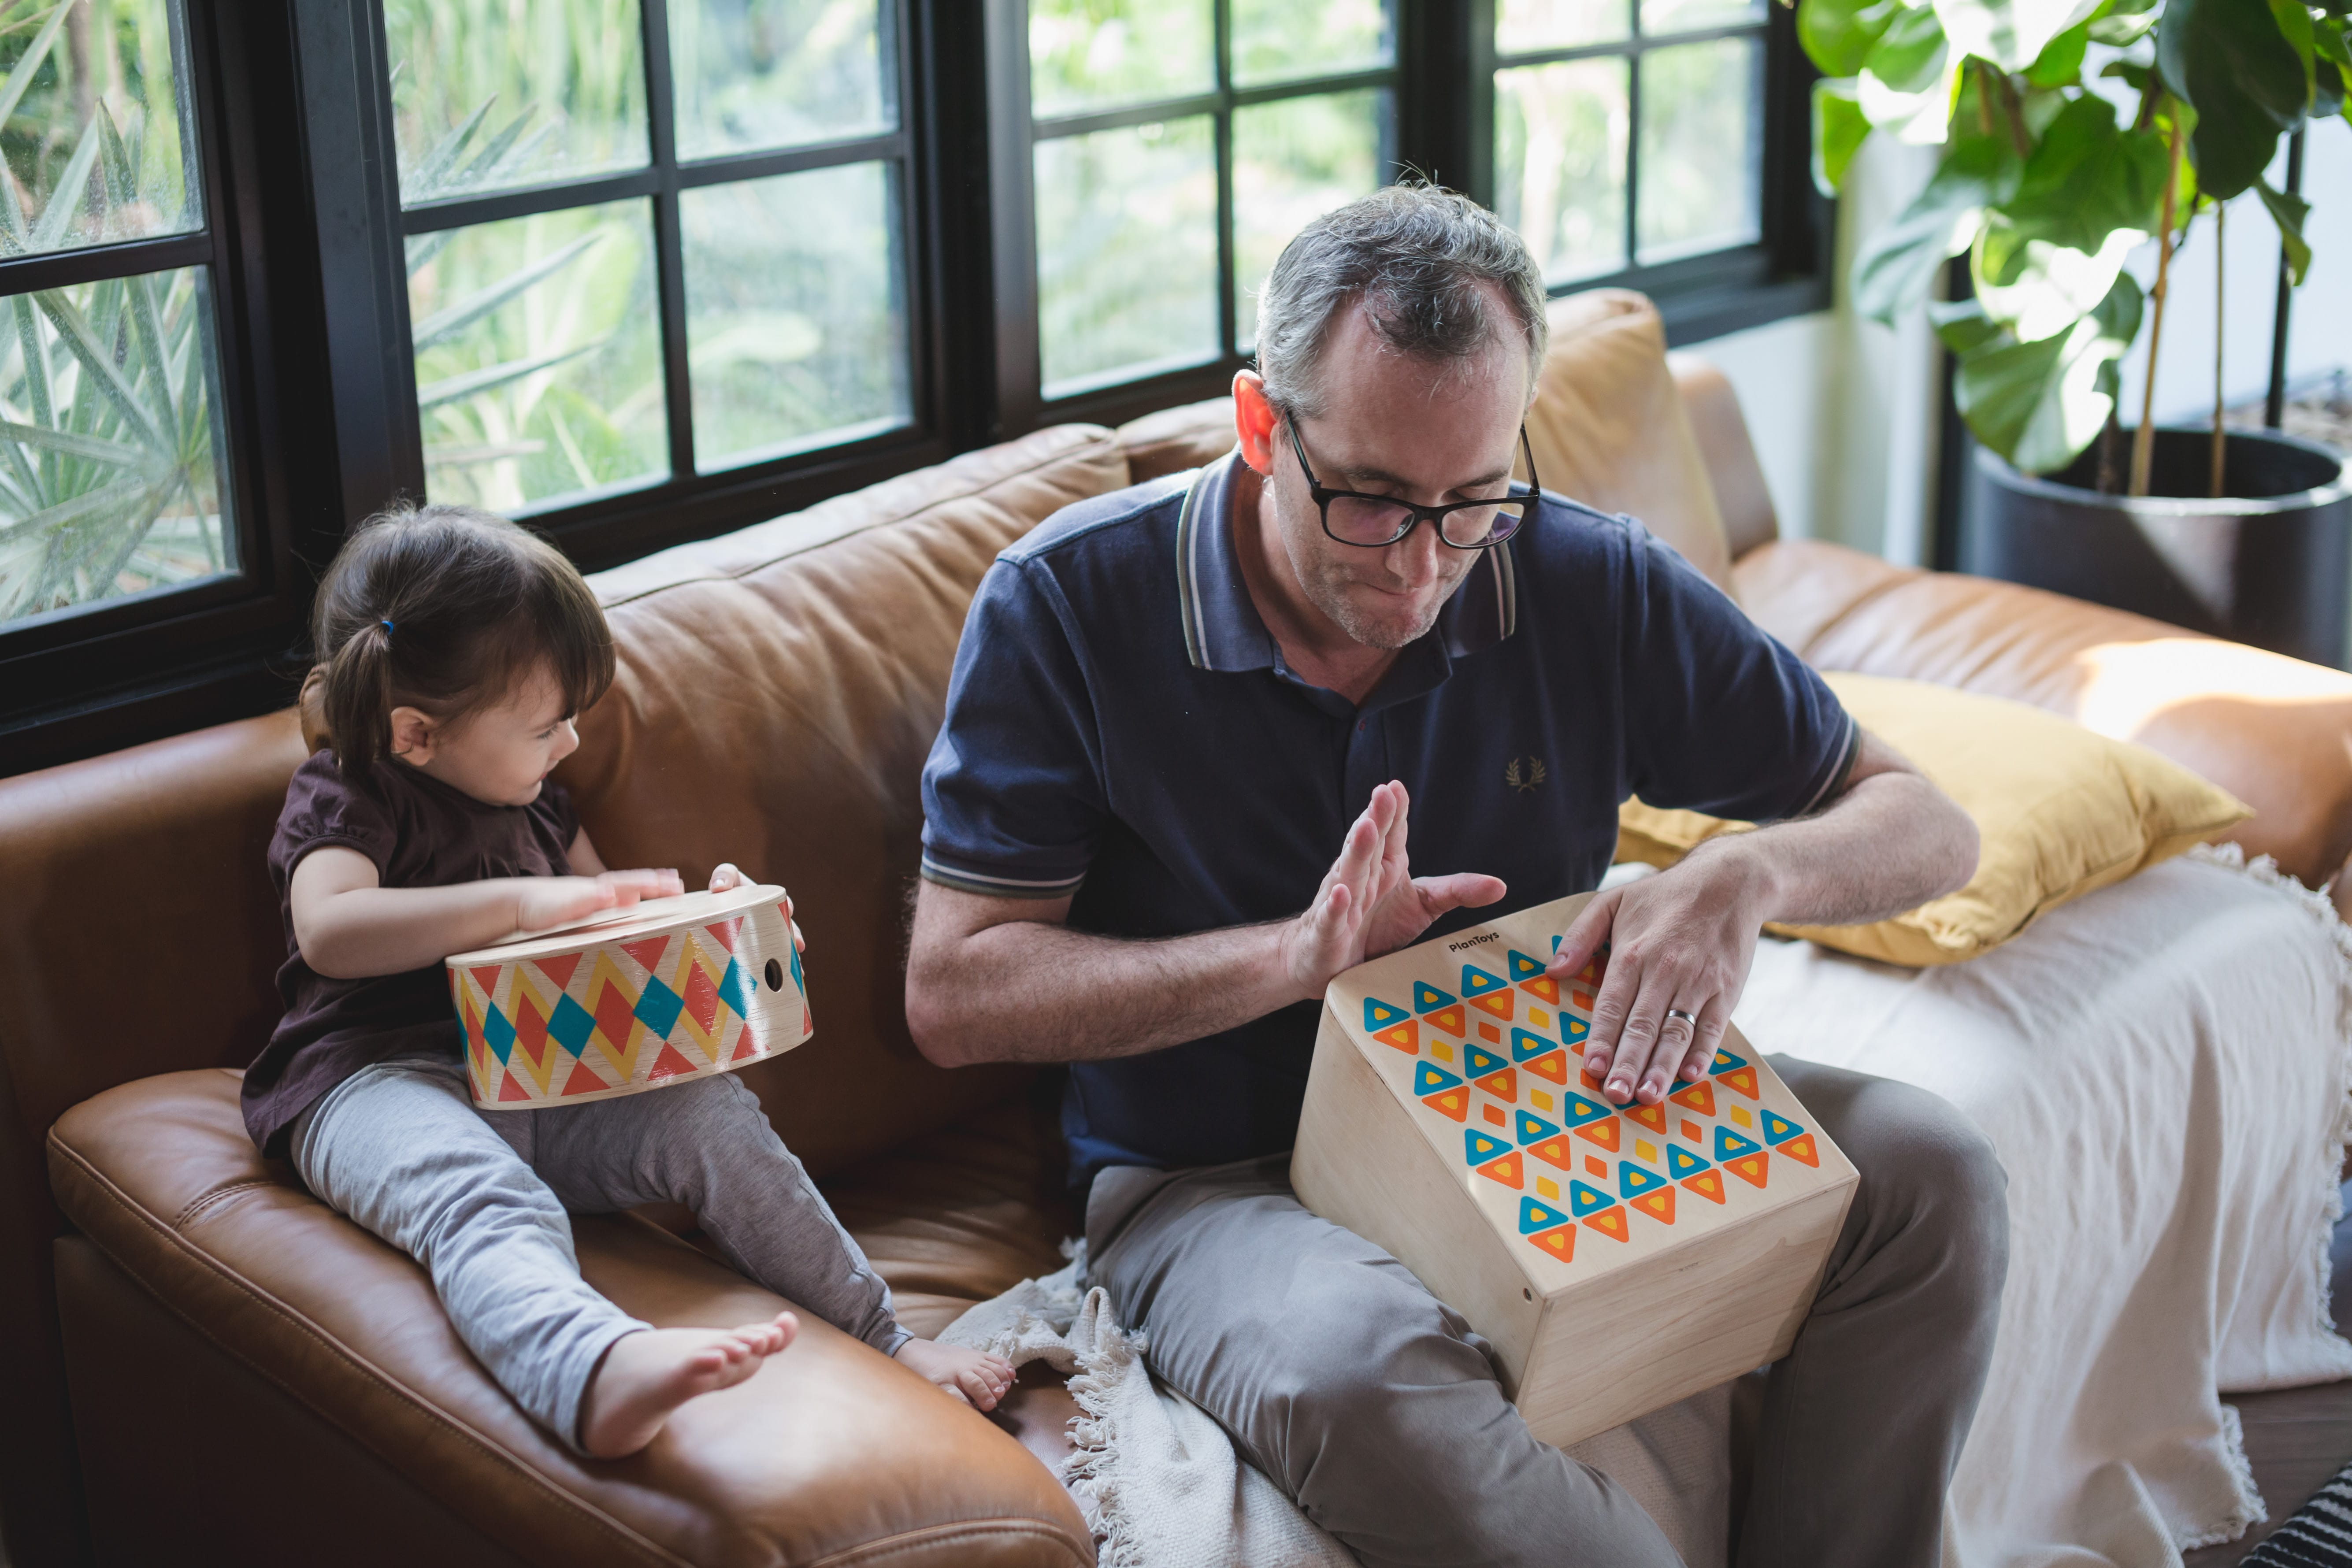 6423_PlanToys_RHYTHM_BOX_Music_Musical_Auditory_Concentration_Emotion_Coordination_Creative_3yrs_Wooden_toys_Education_toys_Safety_Toys_Non-toxic_0.jpg